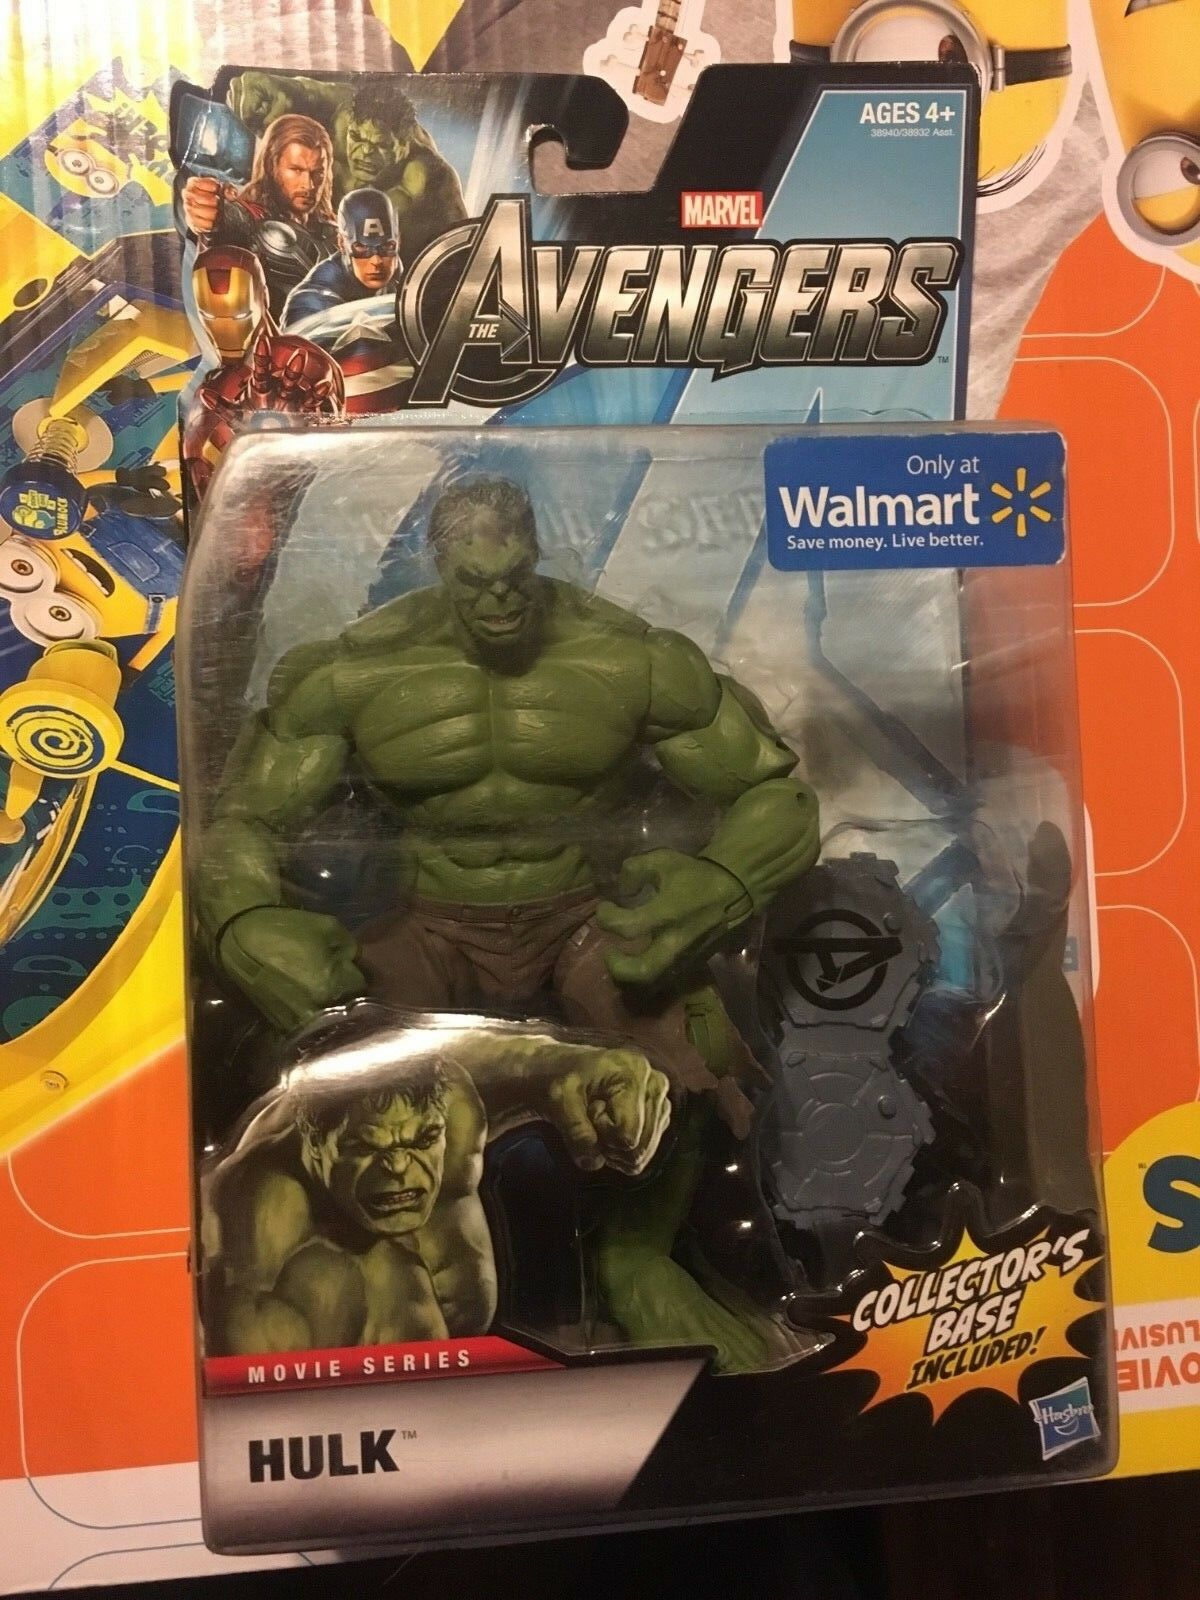 THE AVENGERS  De MARVEL Hulk Movie Series Walmart Exclusive Figure  100% authentique